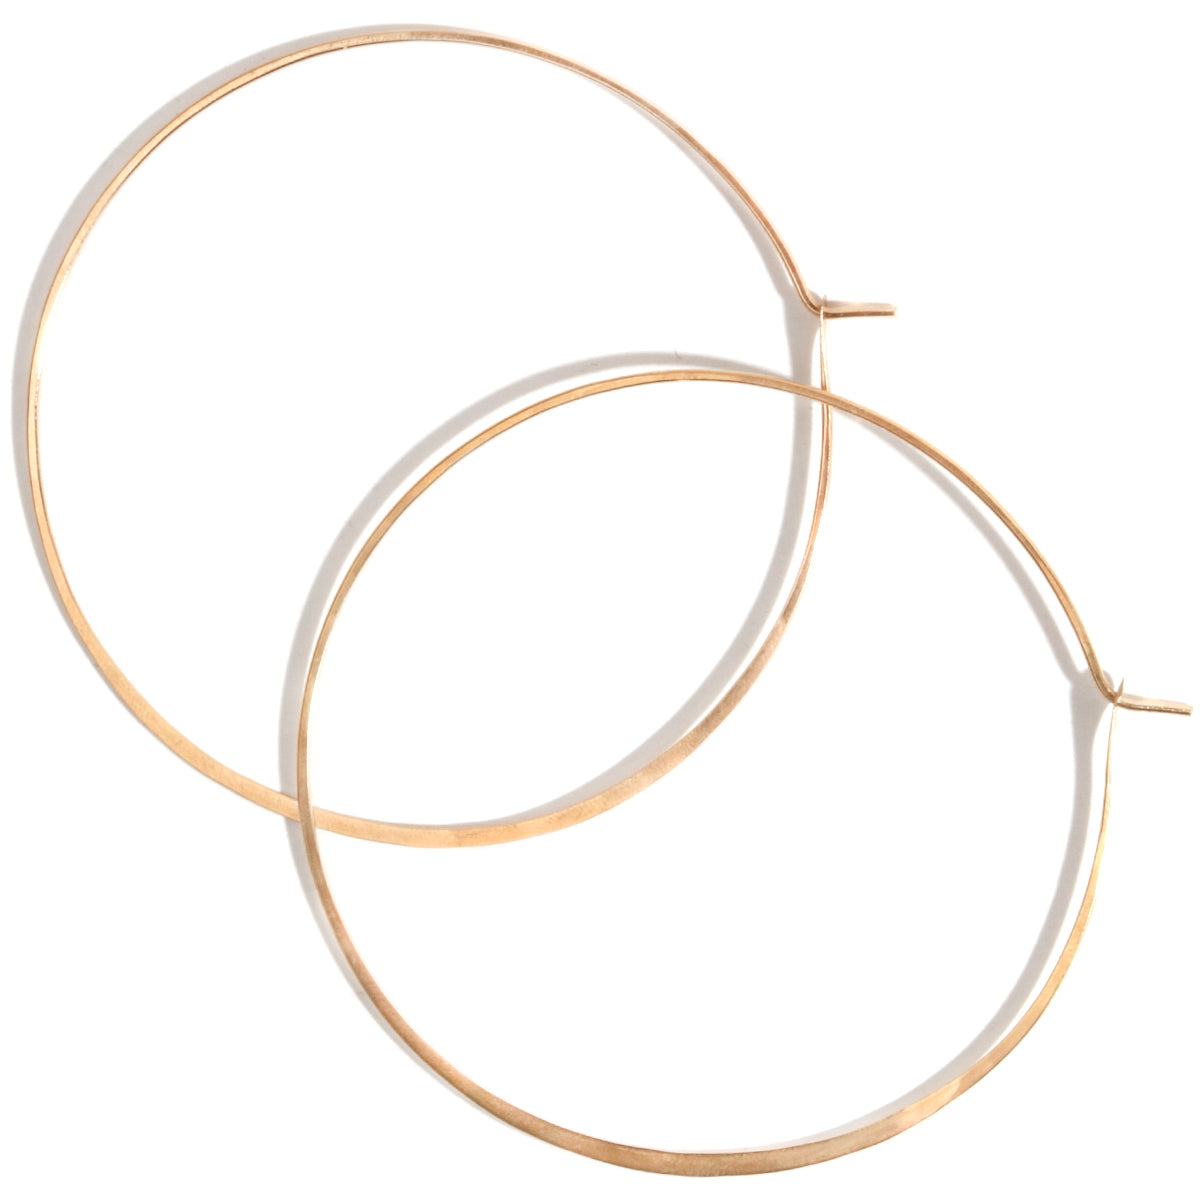 2.75 Inch Soup can hoops - Melissa Joy Manning Jewelry